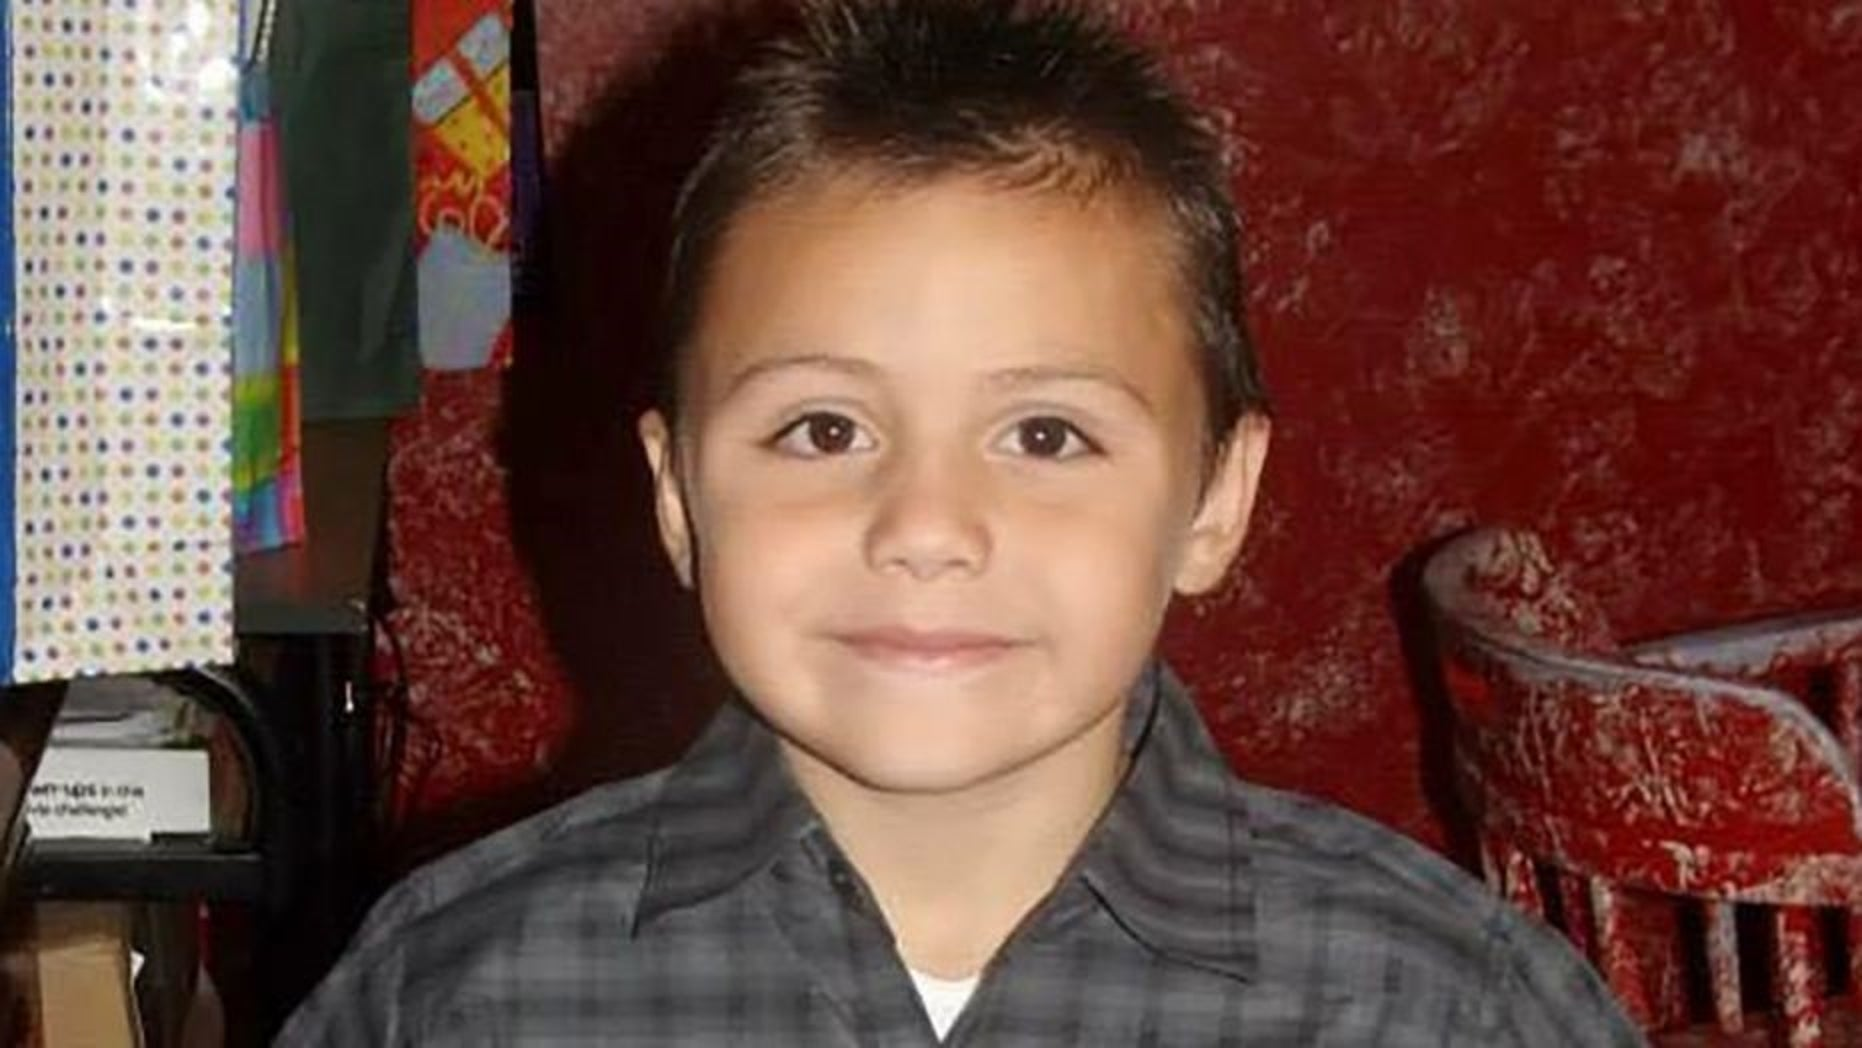 A person has been arrested in the death of Anthony Avalos, police said.